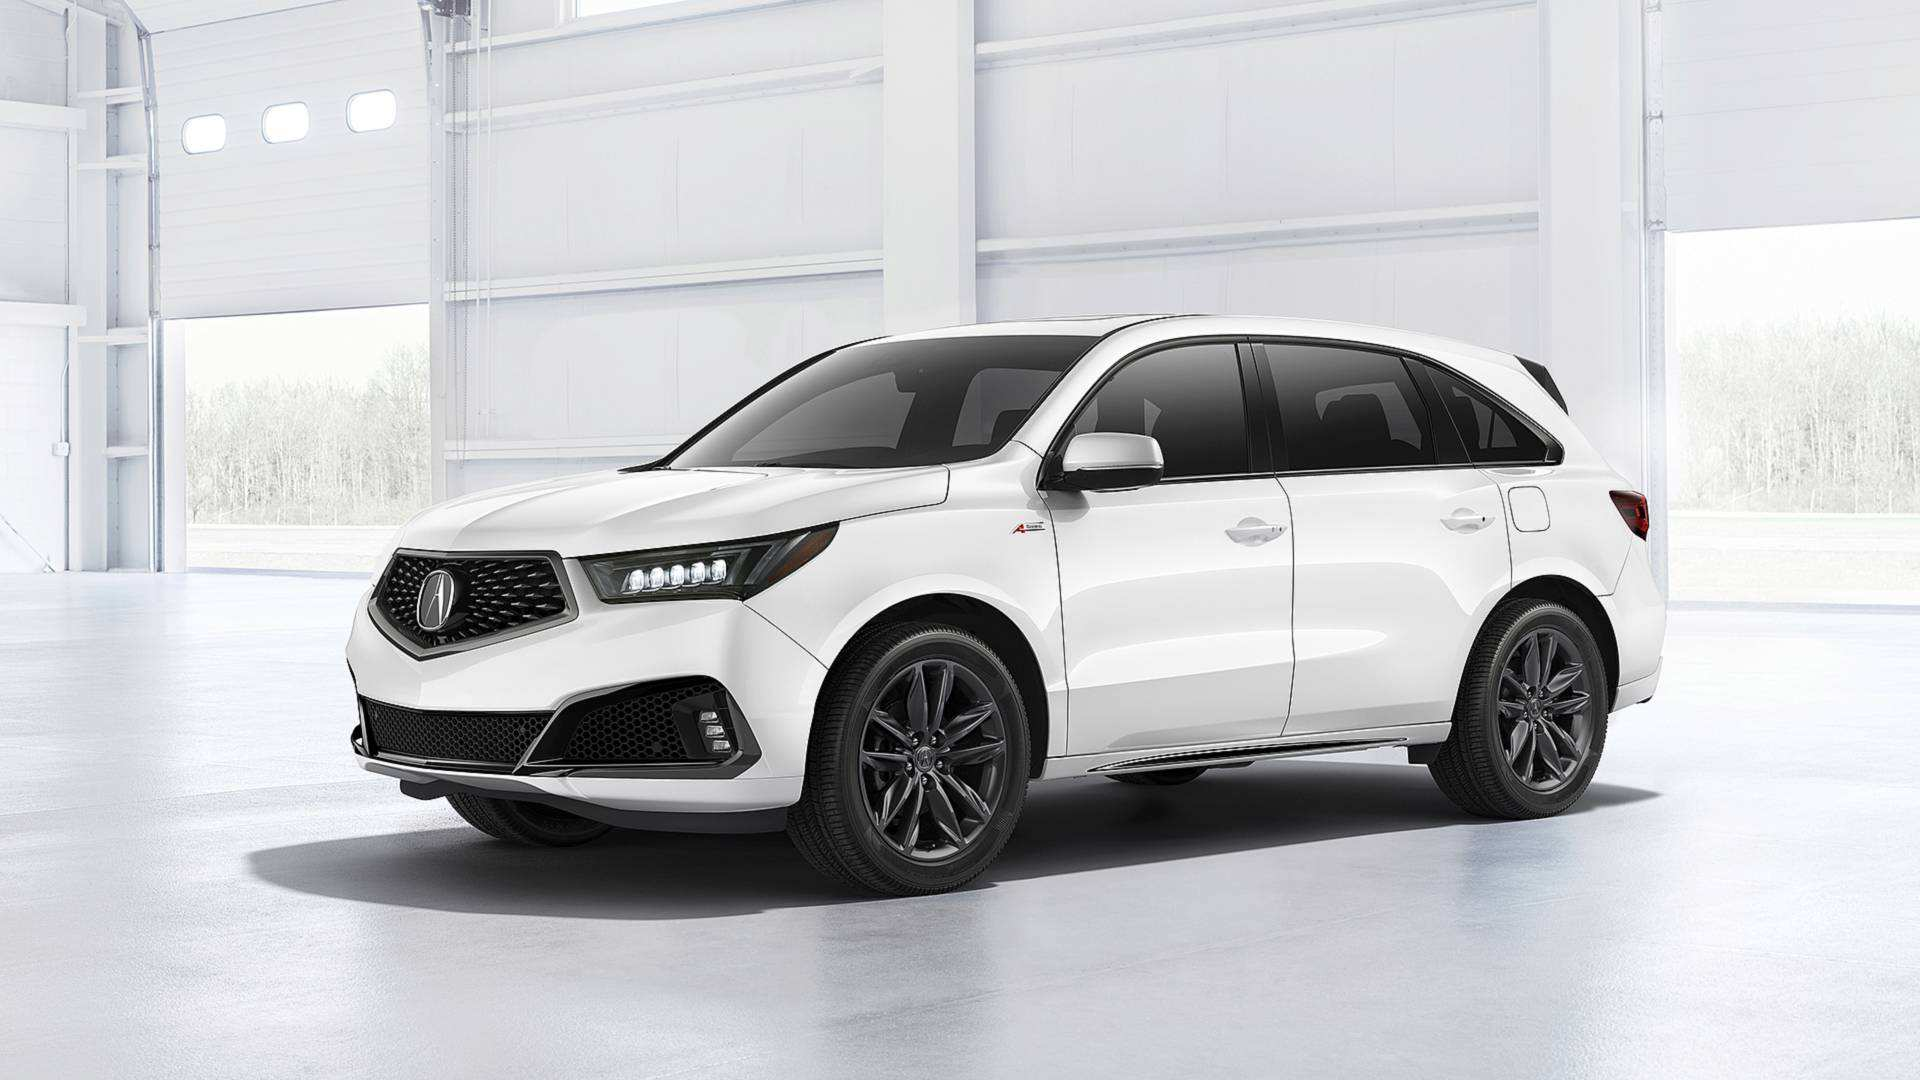 48 All New 2020 Acura Mdx Spy Photos Rumors with 2020 Acura Mdx Spy Photos